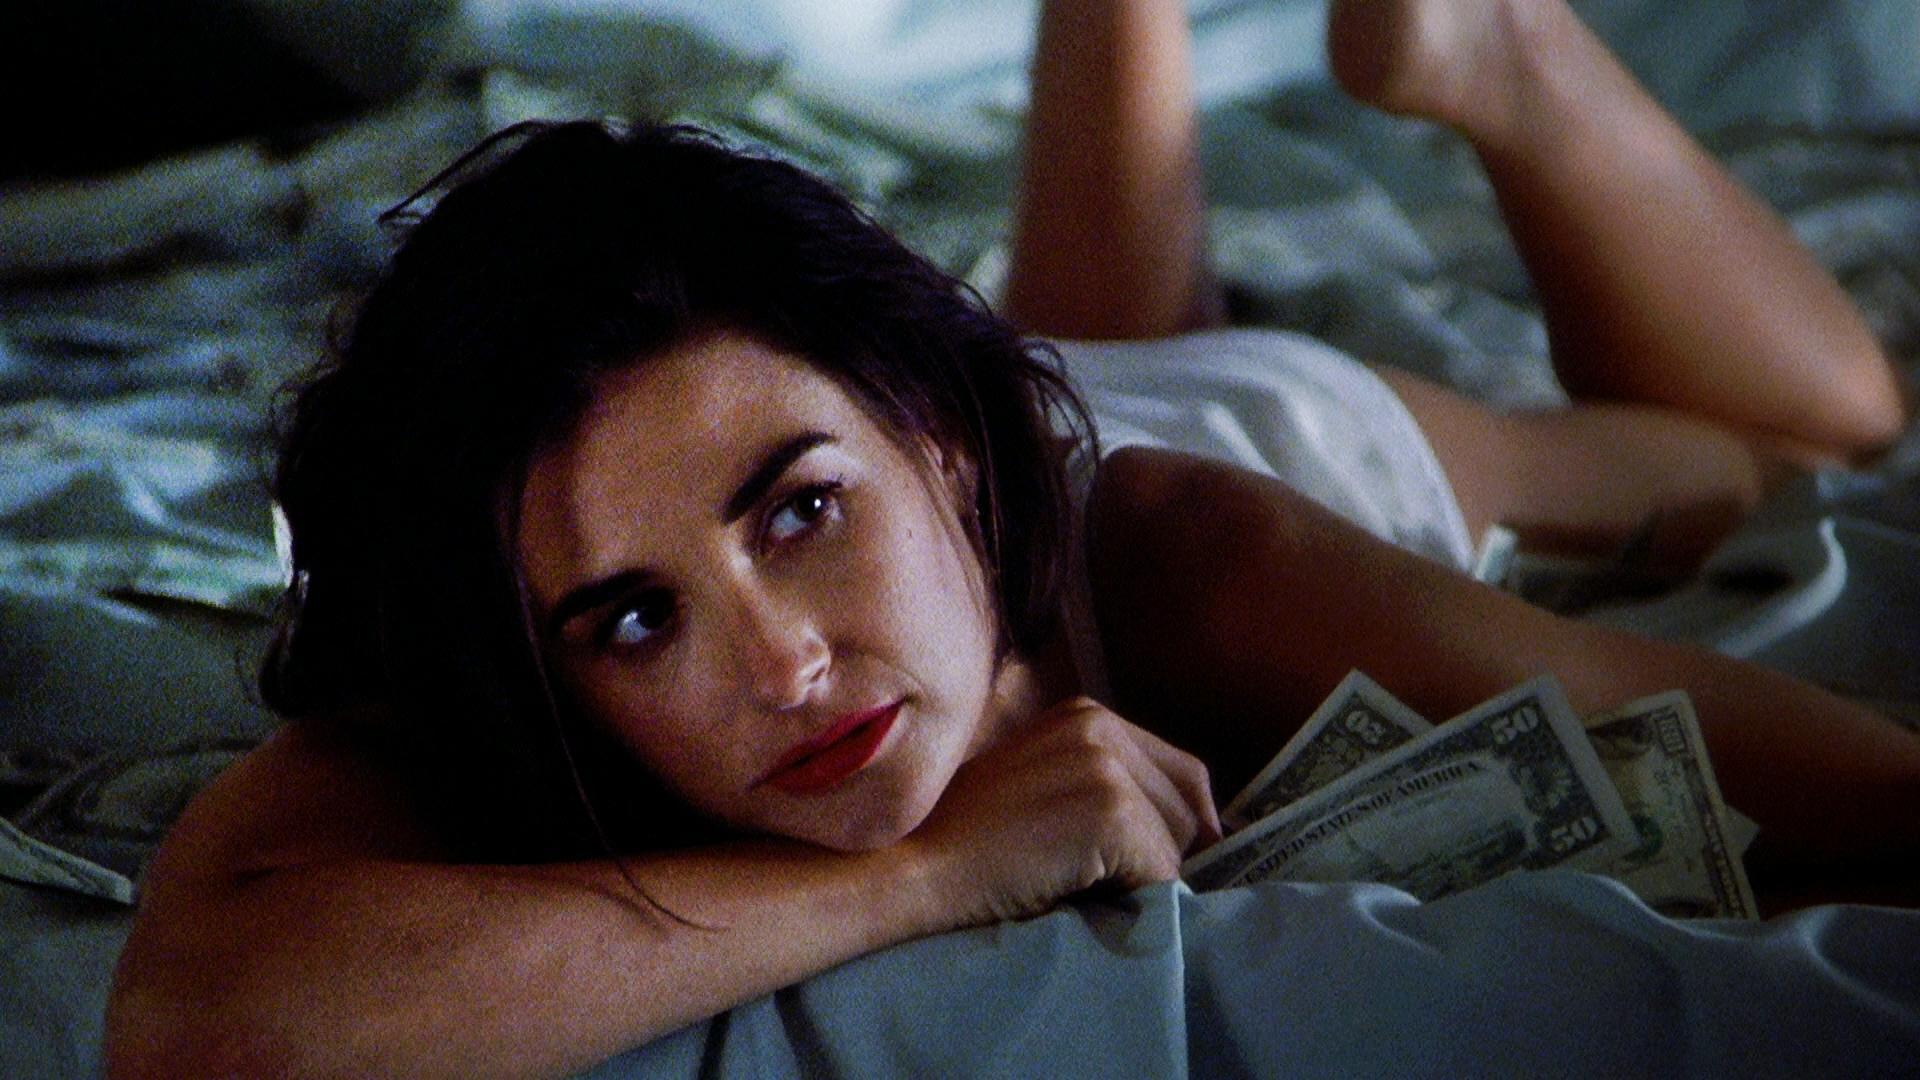 Image gallery for Indecent Proposal - FilmAffinity